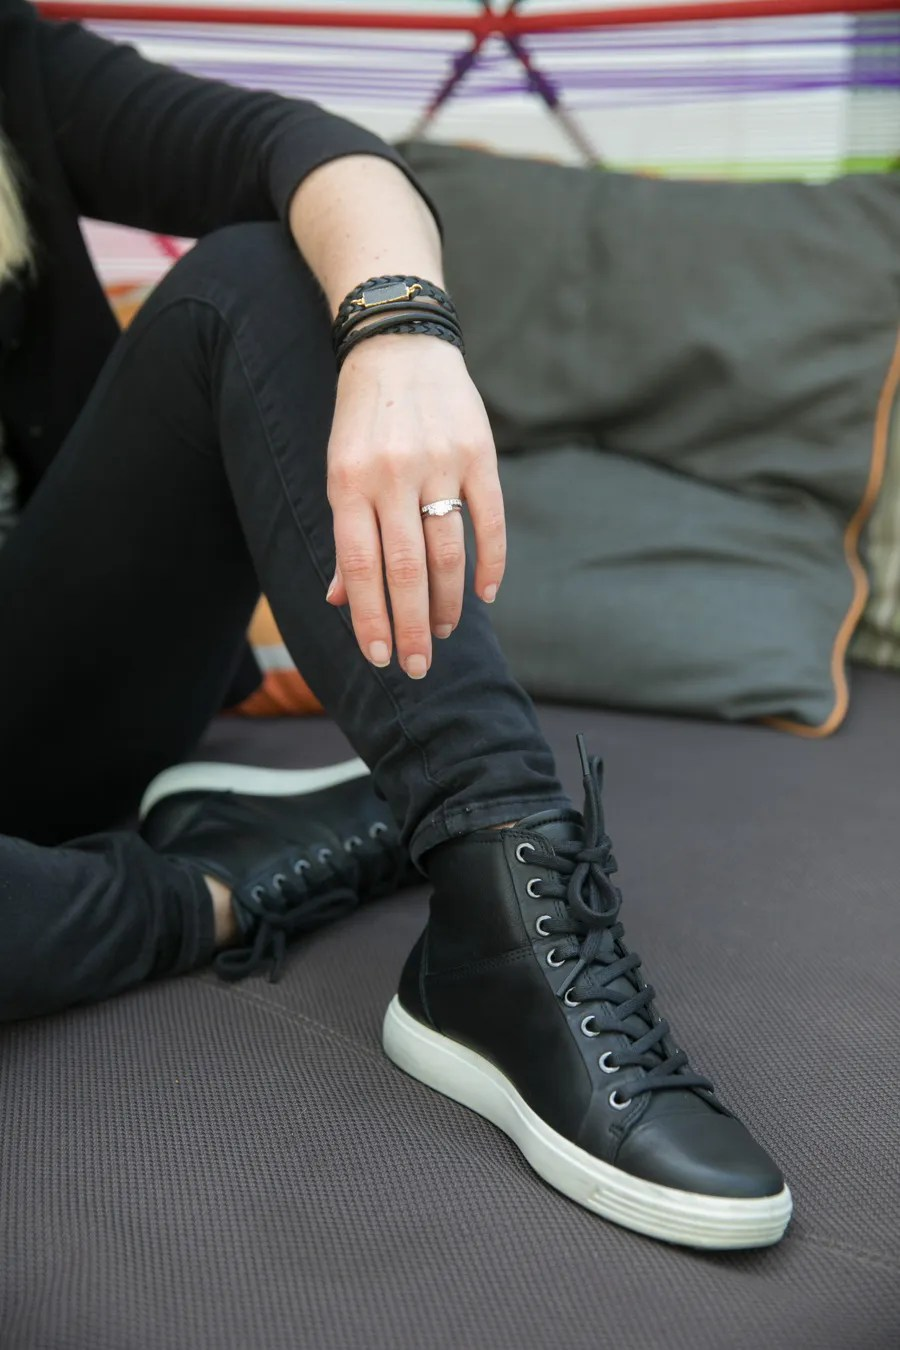 How to Wear High Top Sneakers Women's Outfit Inspiration